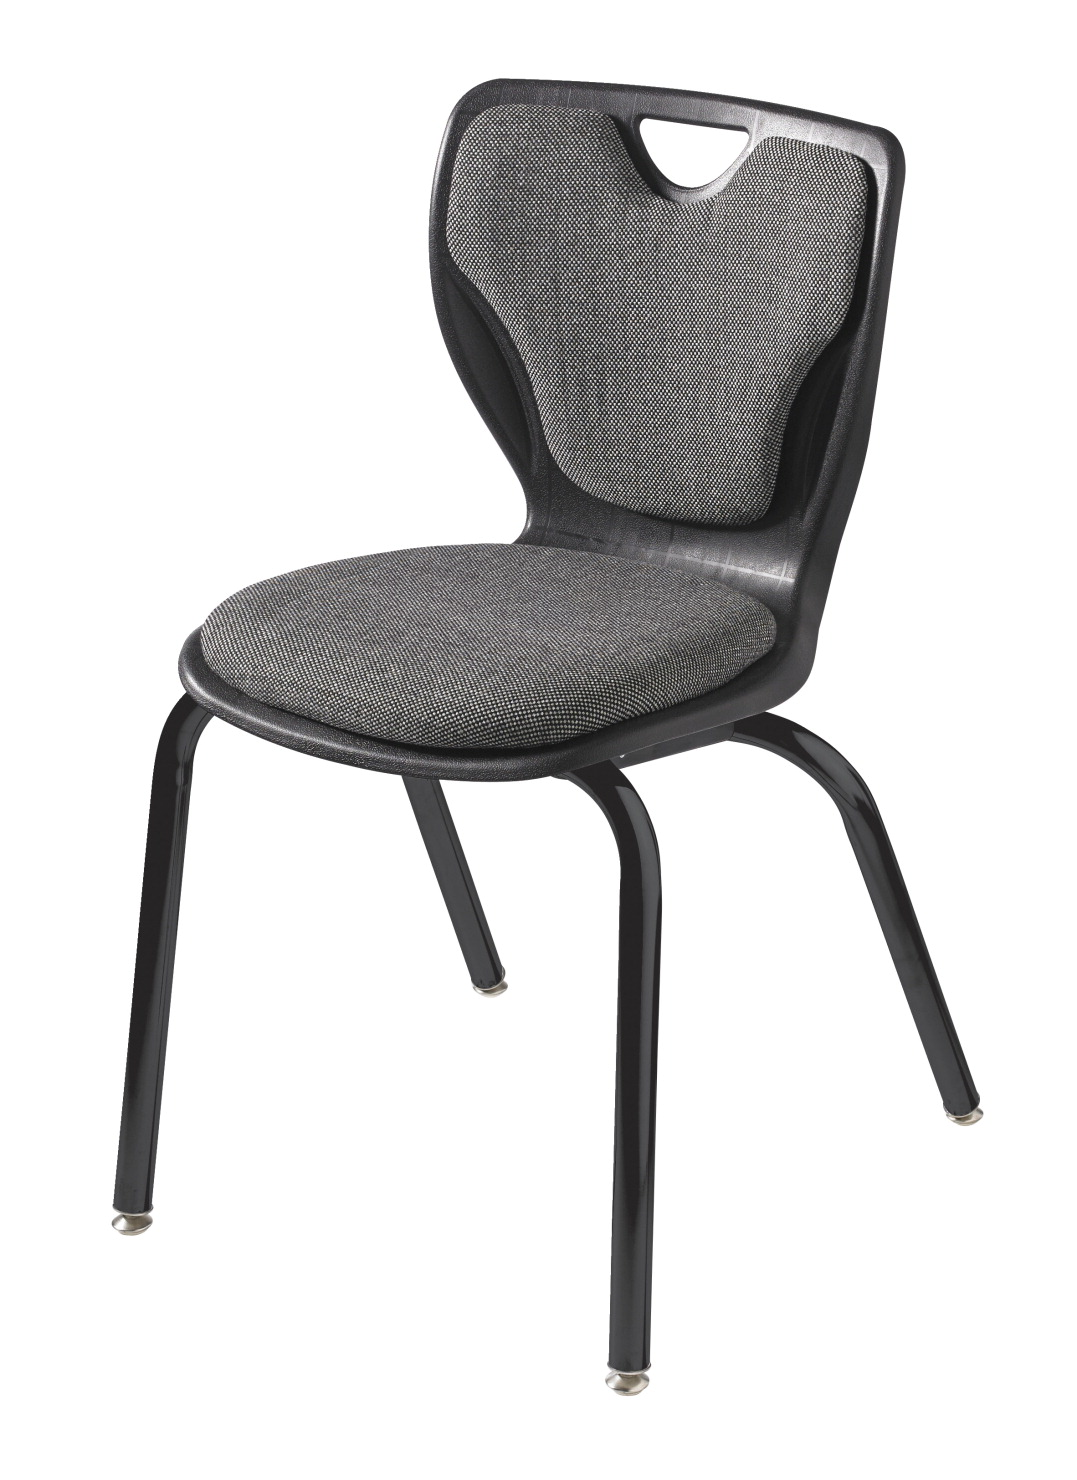 Classroom Select Contemporary Chair, Padded, 18 Inch A+ Seat Height, Black Frame, Various Options